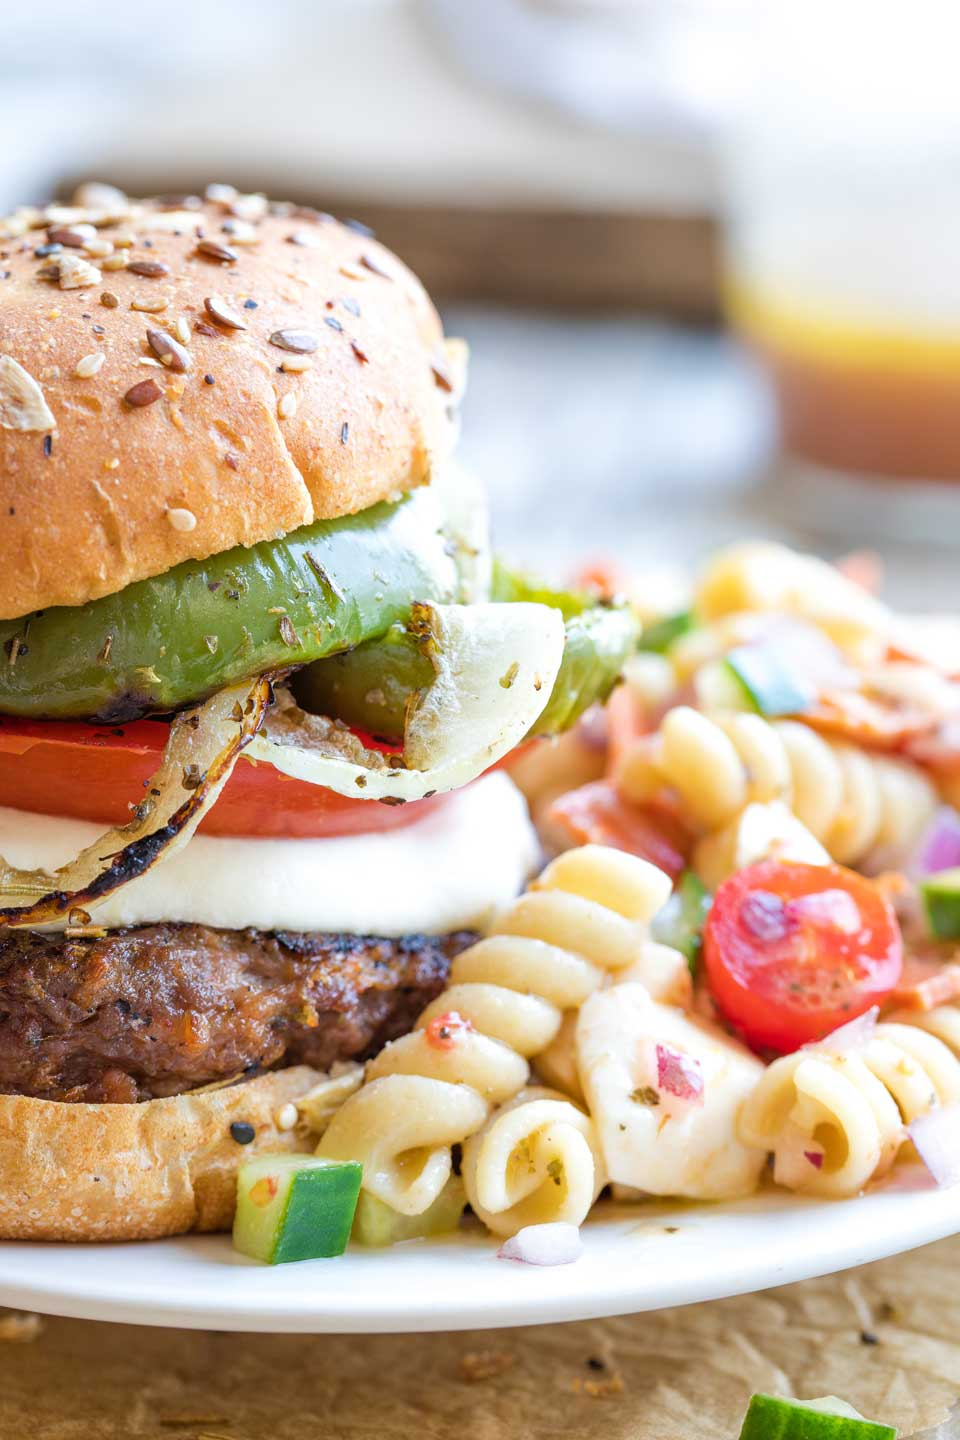 Closeup showing half of a grilled burger plated next to a mound of Italian pasta salad.